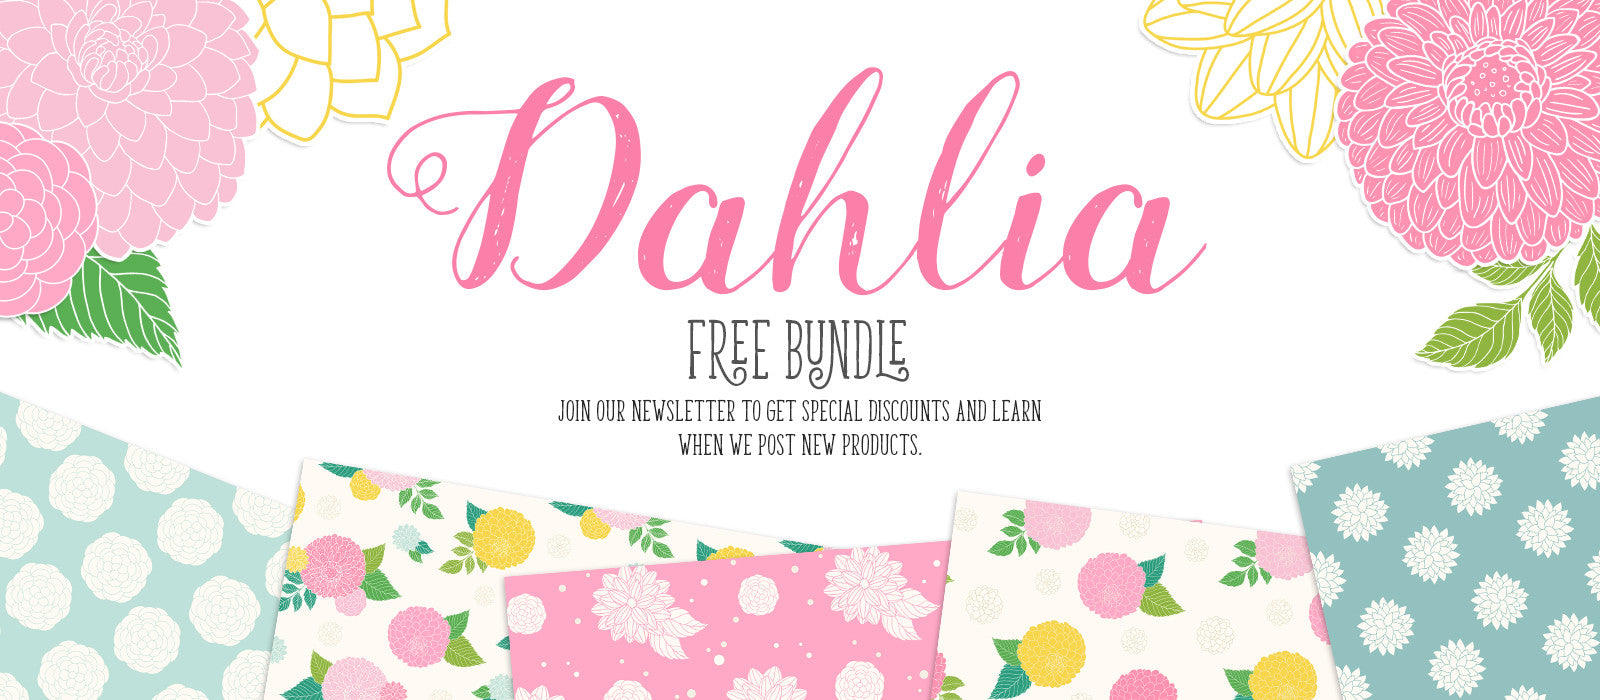 Free Floral Cliparts and Patterns Bundle